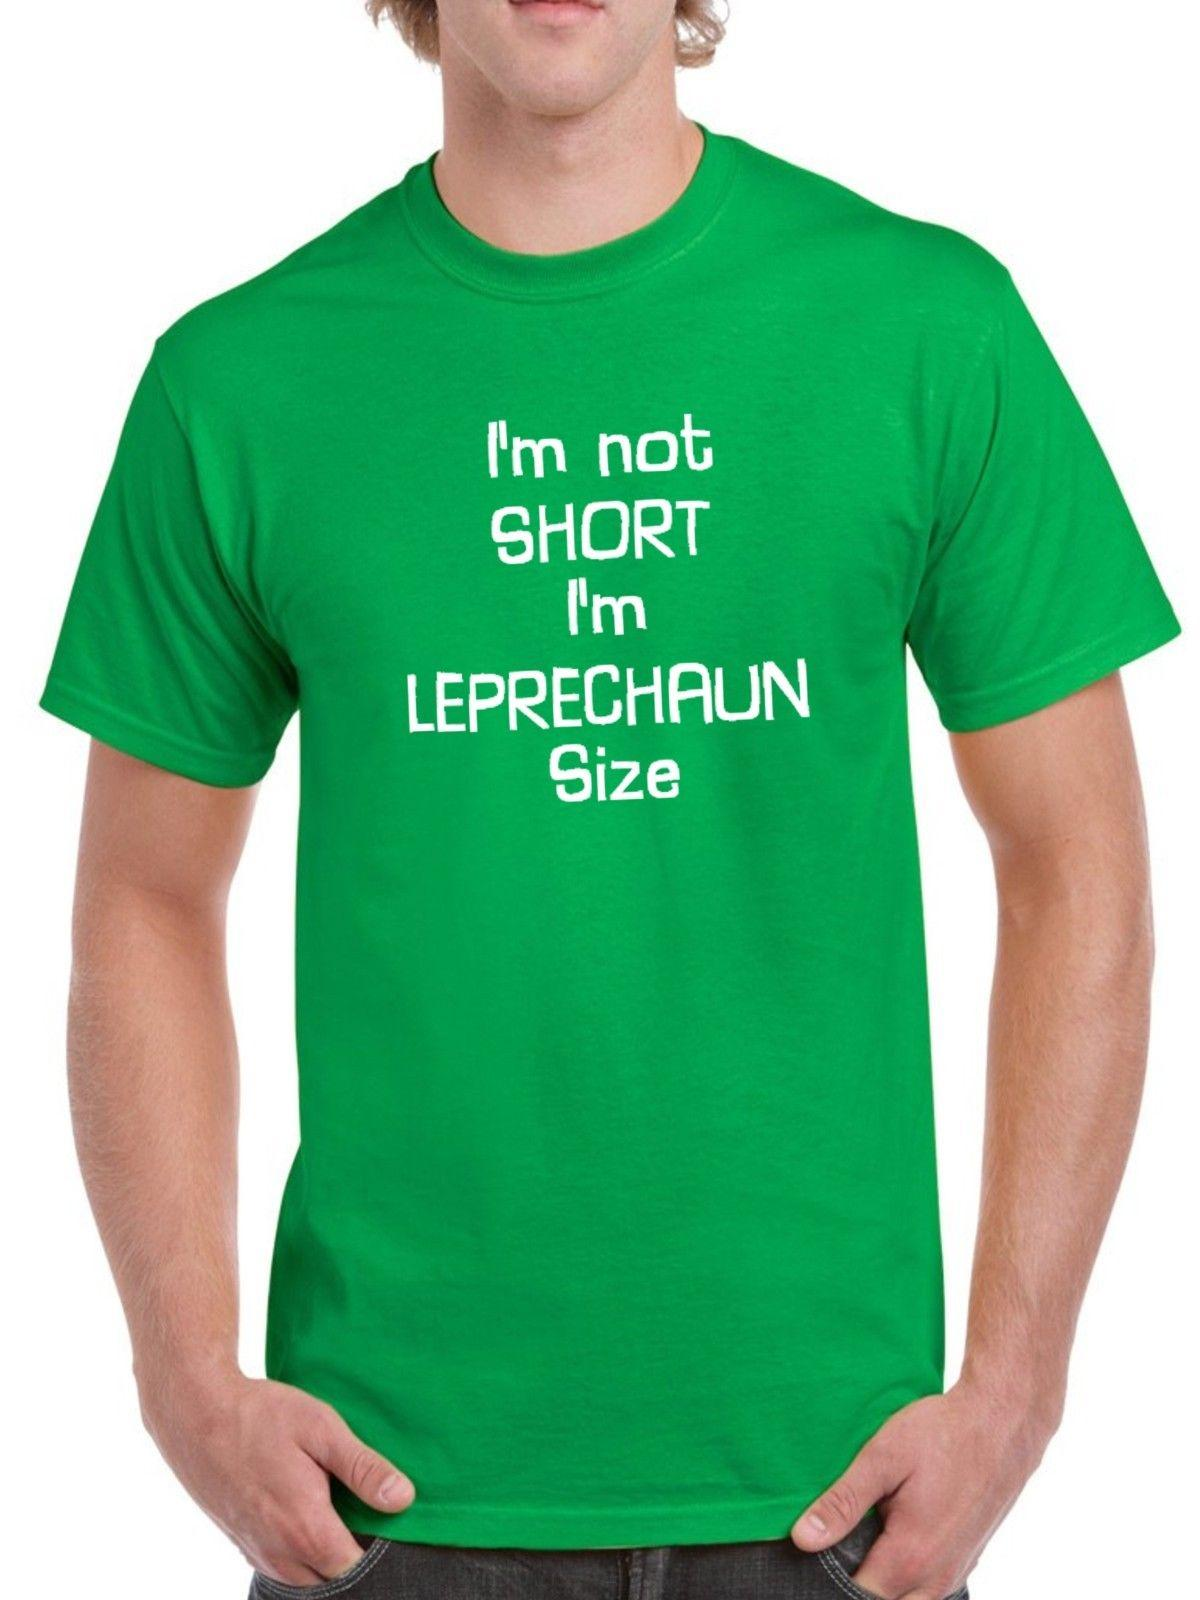 45f471a7b Details zu I'm Not Short I'm Leprechaun Size T Shirt Saint Patrick's Day  Paddys Party Tee Funny free shipping Unisex tee